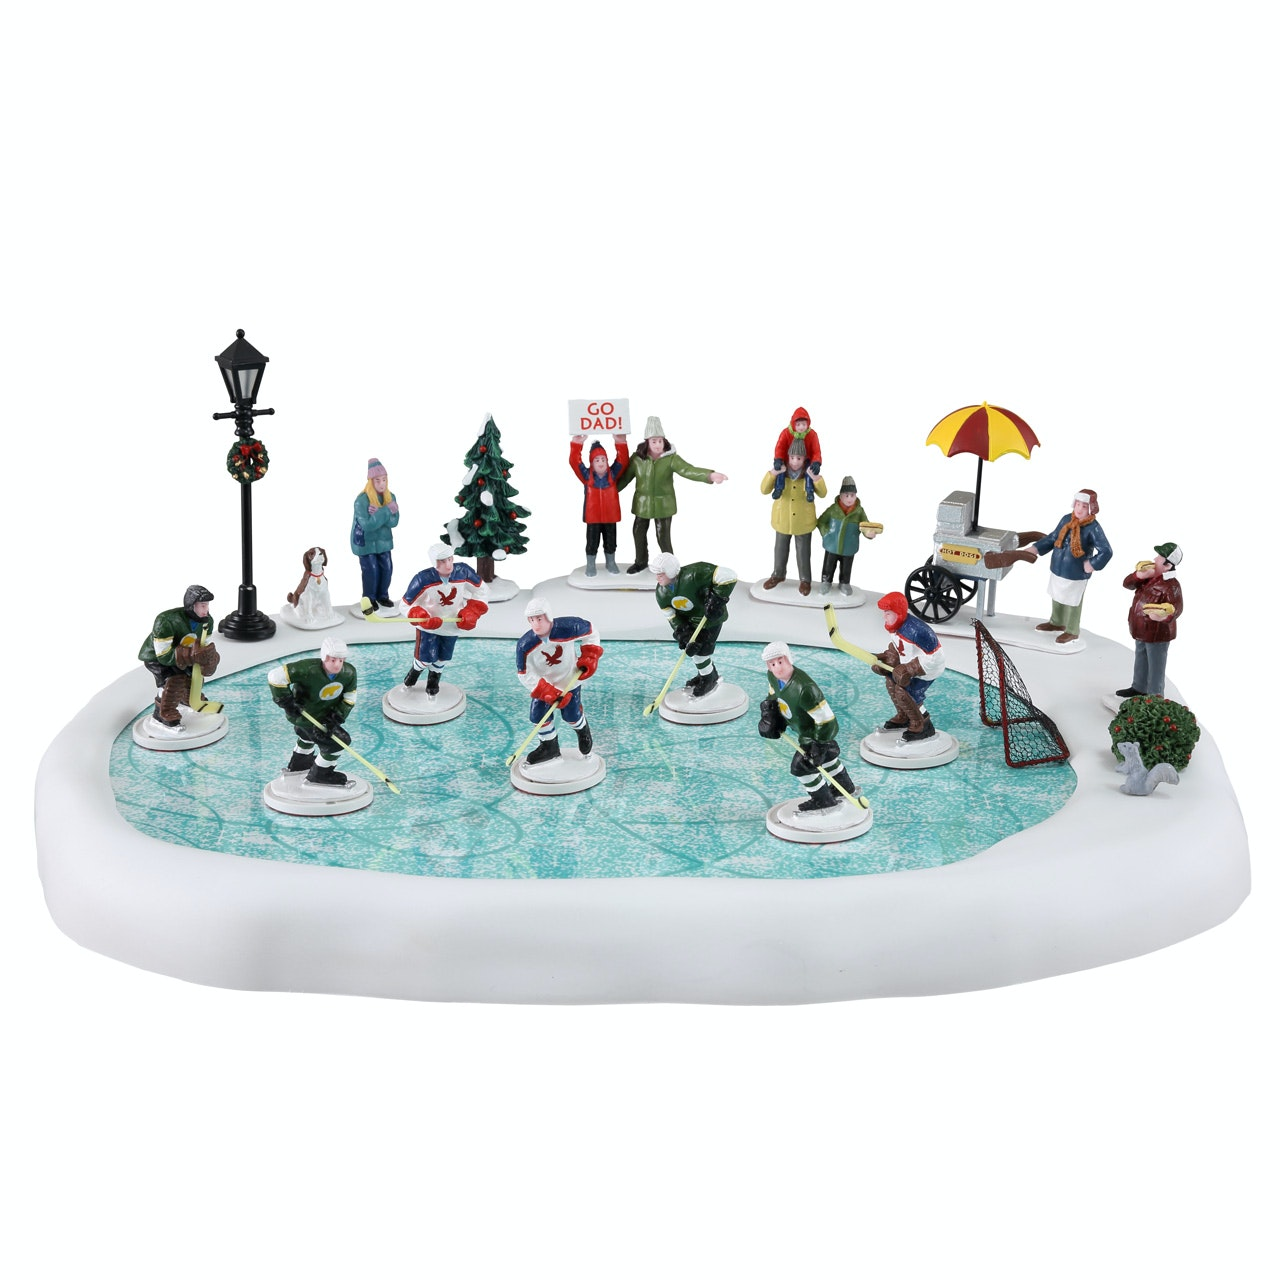 Christmas Village Ice Skating Rink.Hockey In The Park Set Of 19